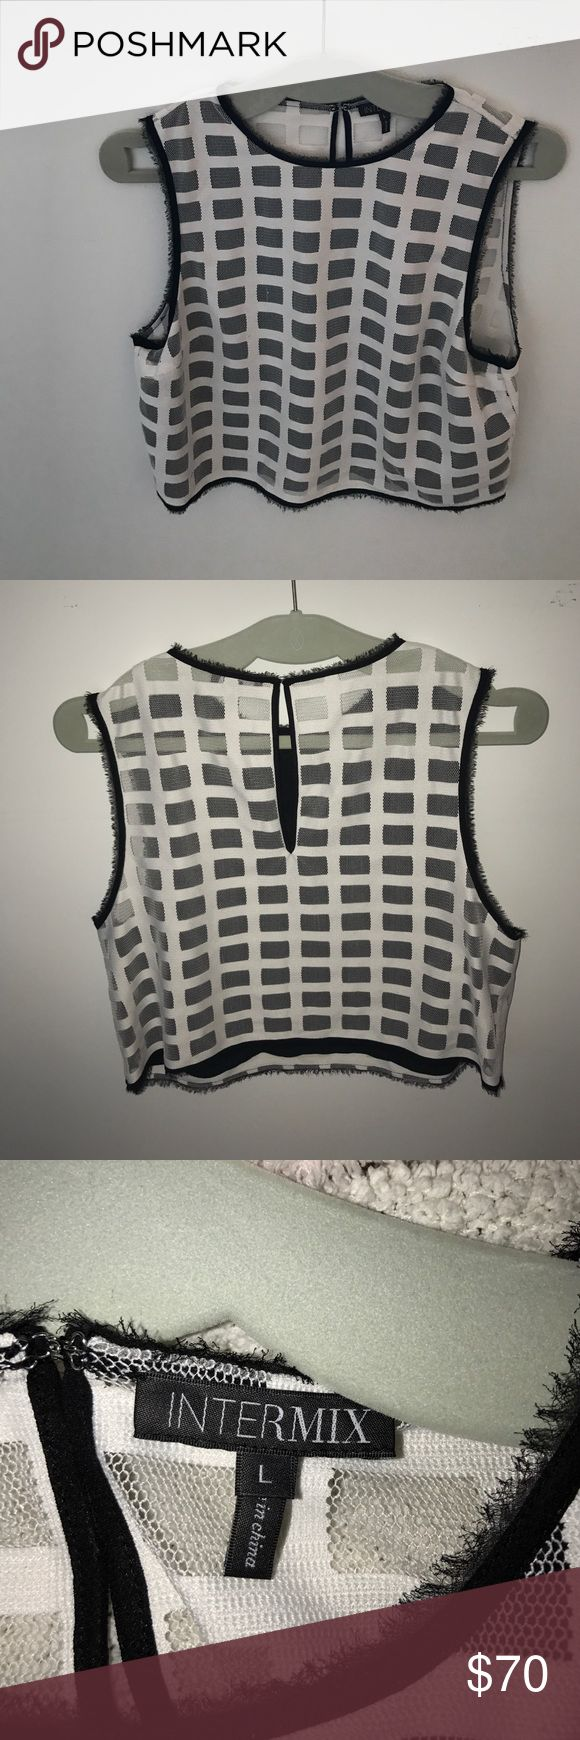 ALC Checkered Crop Top ALC cropped mesh top with black and white checker detail. I love this top but it's too small on me!! Pair it with jeans or a pair of black high waisted shorts Intermix Tops Crop Tops